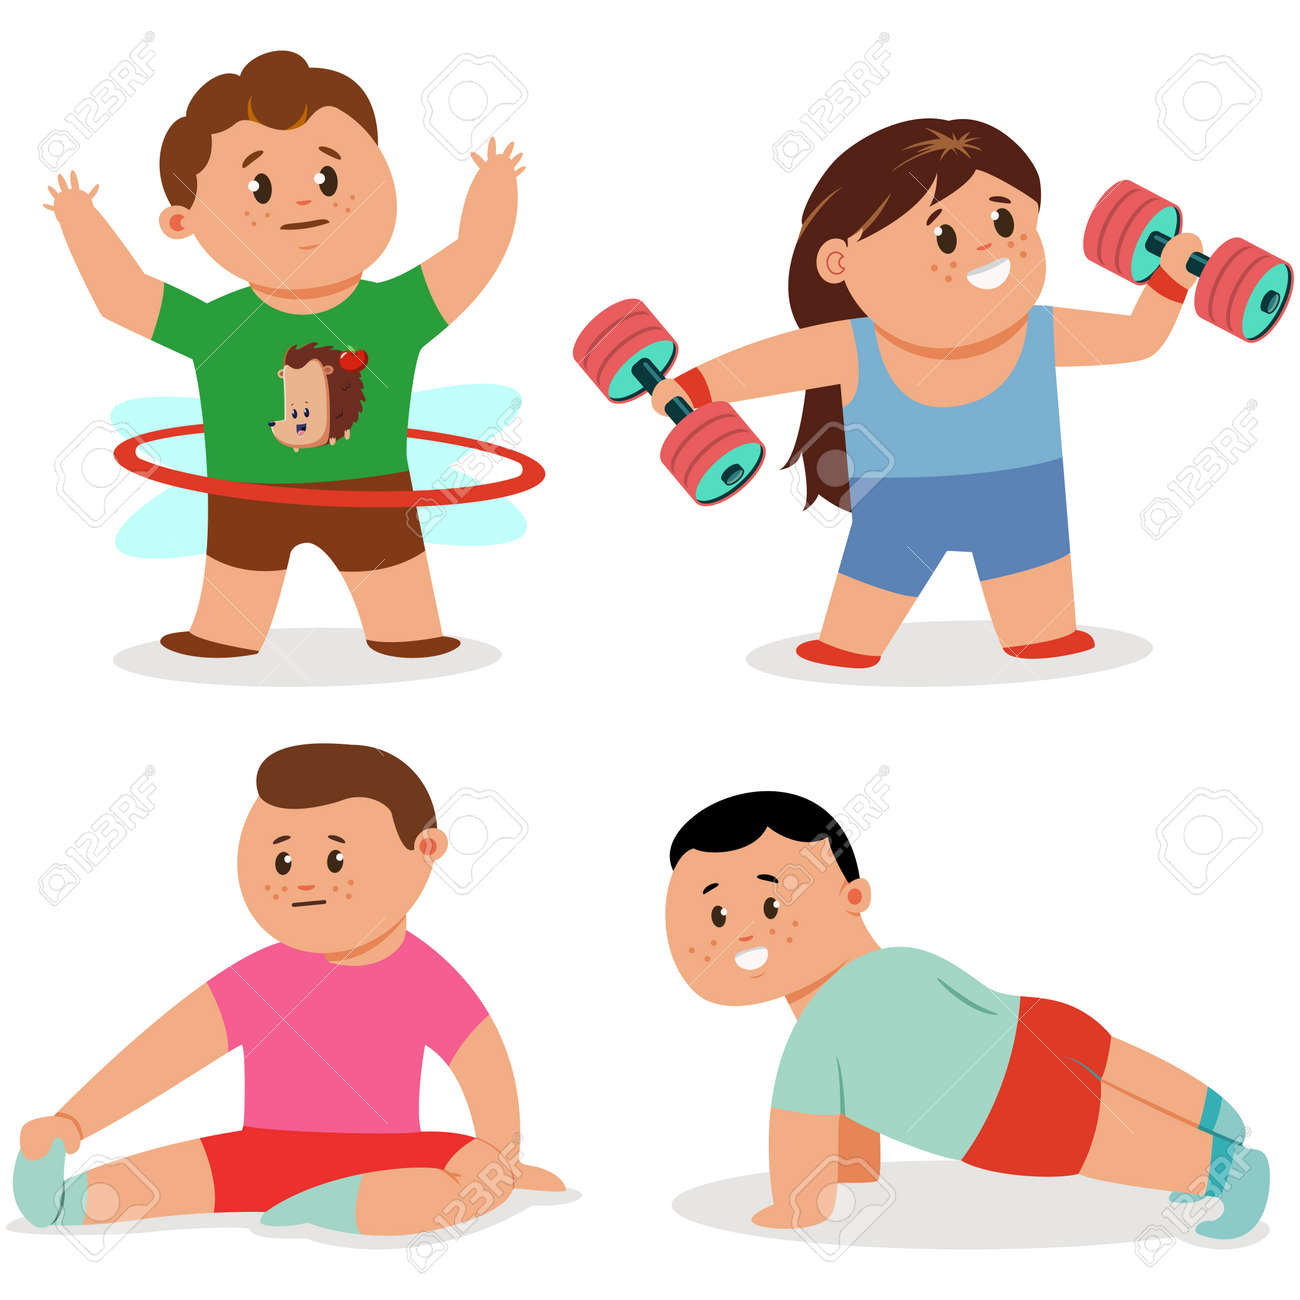 Kids Doing Fitness Exercises Cute Cartoon Girl And Boy Vector Royalty Free Cliparts Vectors And Stock Illustration Image 108517132